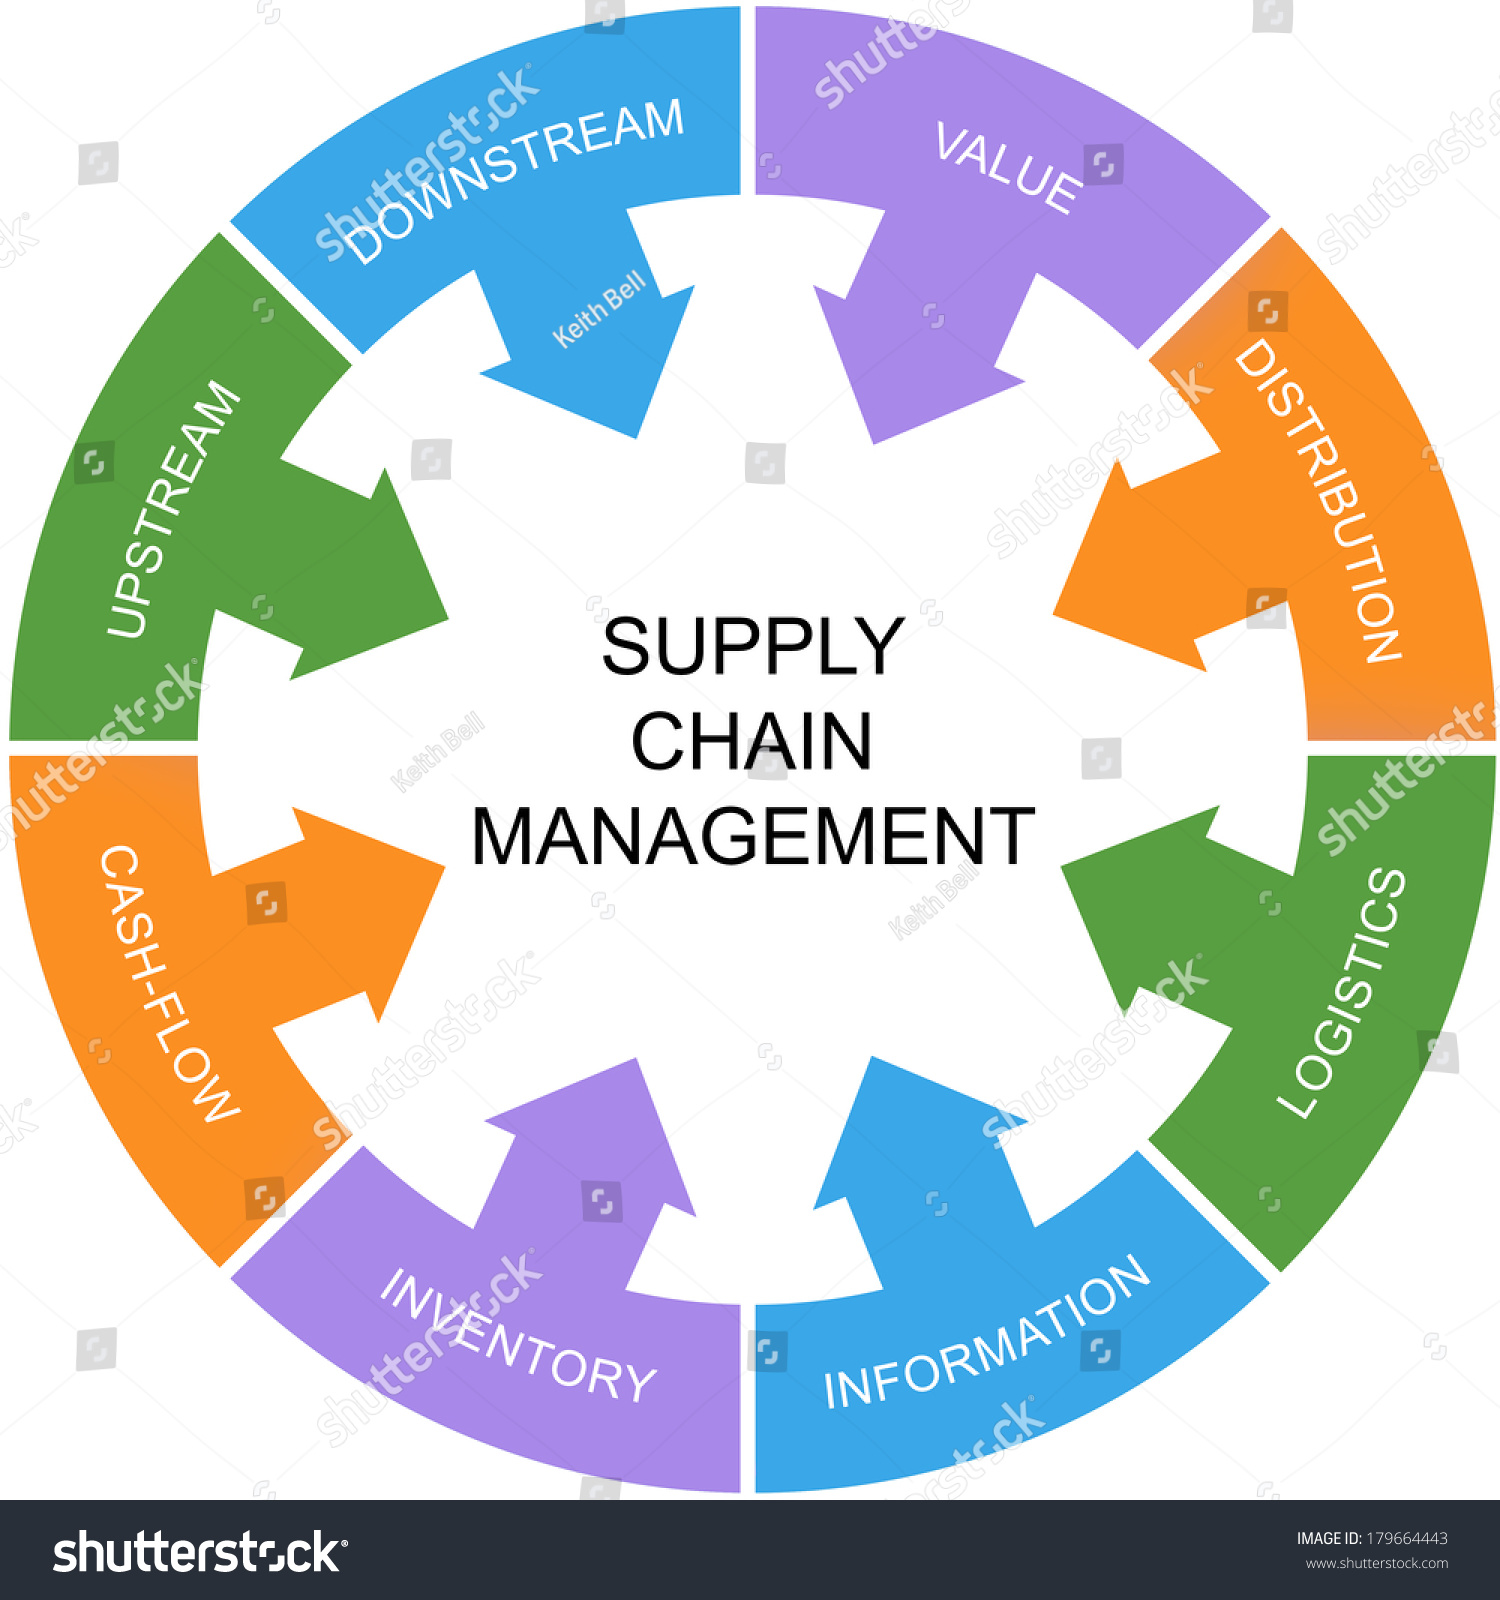 "value chain management thesis Value chain analysis is a framework used to investigate how best to produce the greatest available value to customers shank and govindarajan (1993) has stated that ""the value chain for any firm is the value-creating activities all the way from basic raw material sources from component suppliers through to the ultimate end-use product delivered into the final consumers' hands."